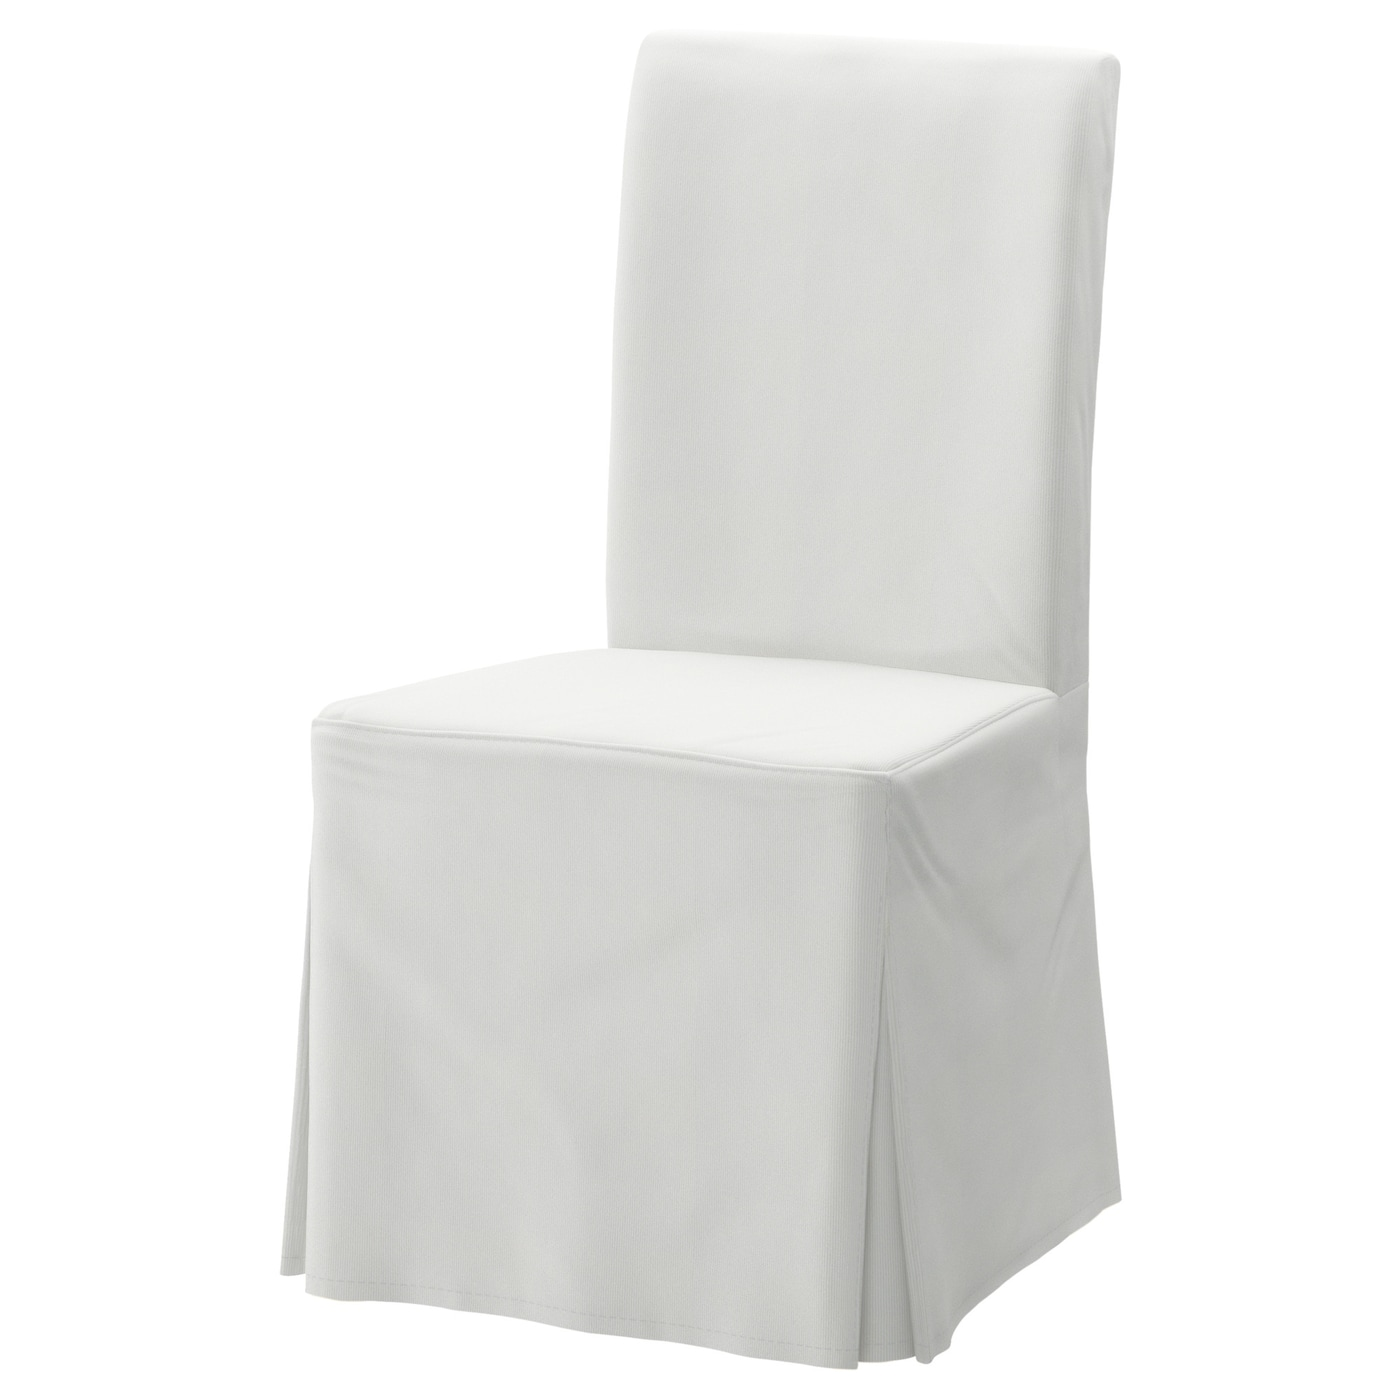 dining chair covers ikea dublin ireland. Black Bedroom Furniture Sets. Home Design Ideas